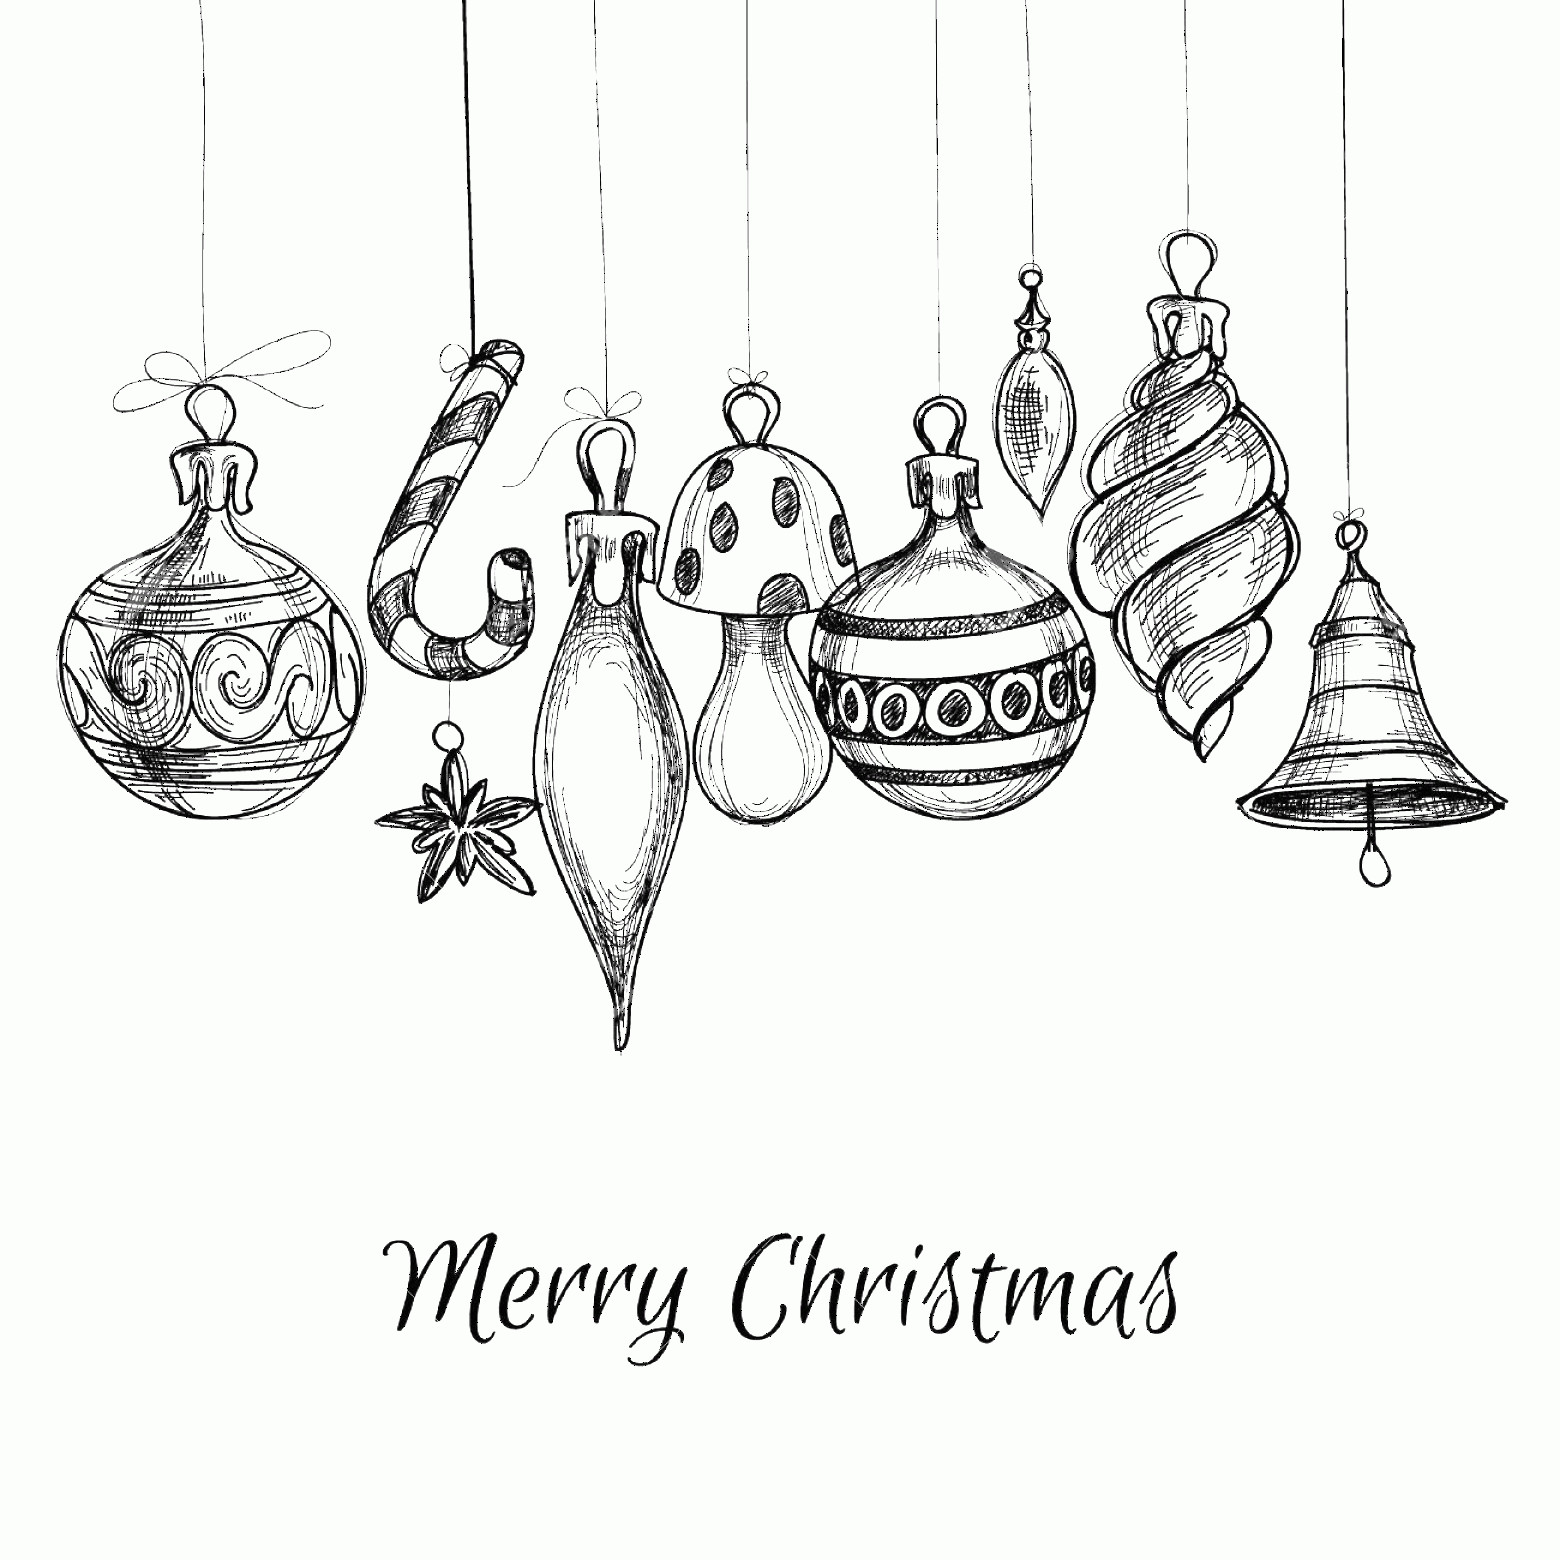 Black And White Christmas Ornament Vector Art: Photostock Vector Black And White Christmas Hand Drawn Ornaments